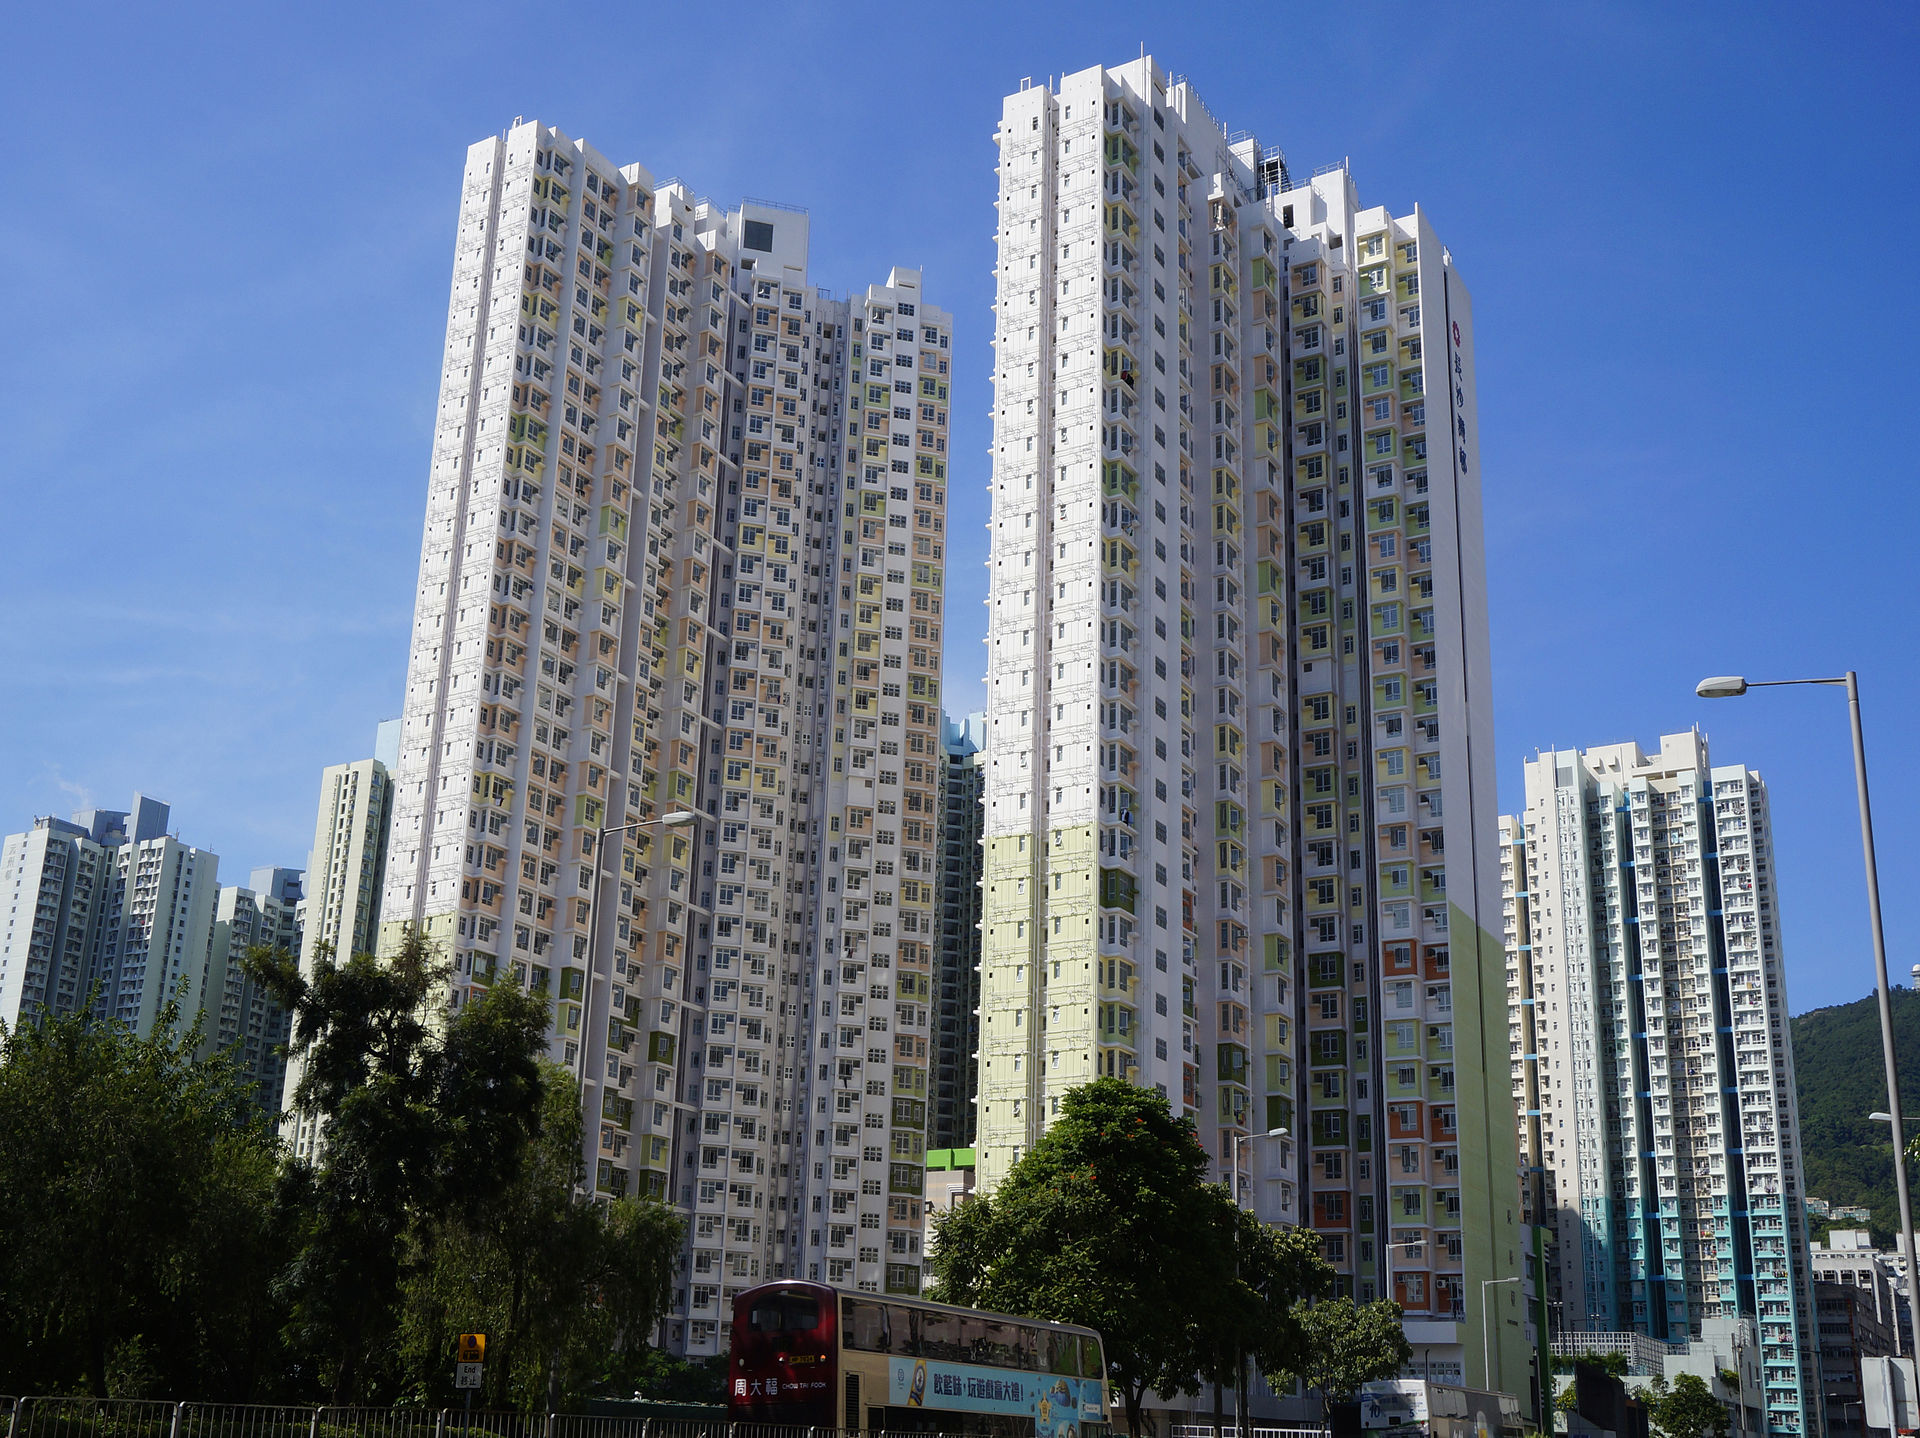 Public housing estates in Cheung Sha Wan - Wikipedia